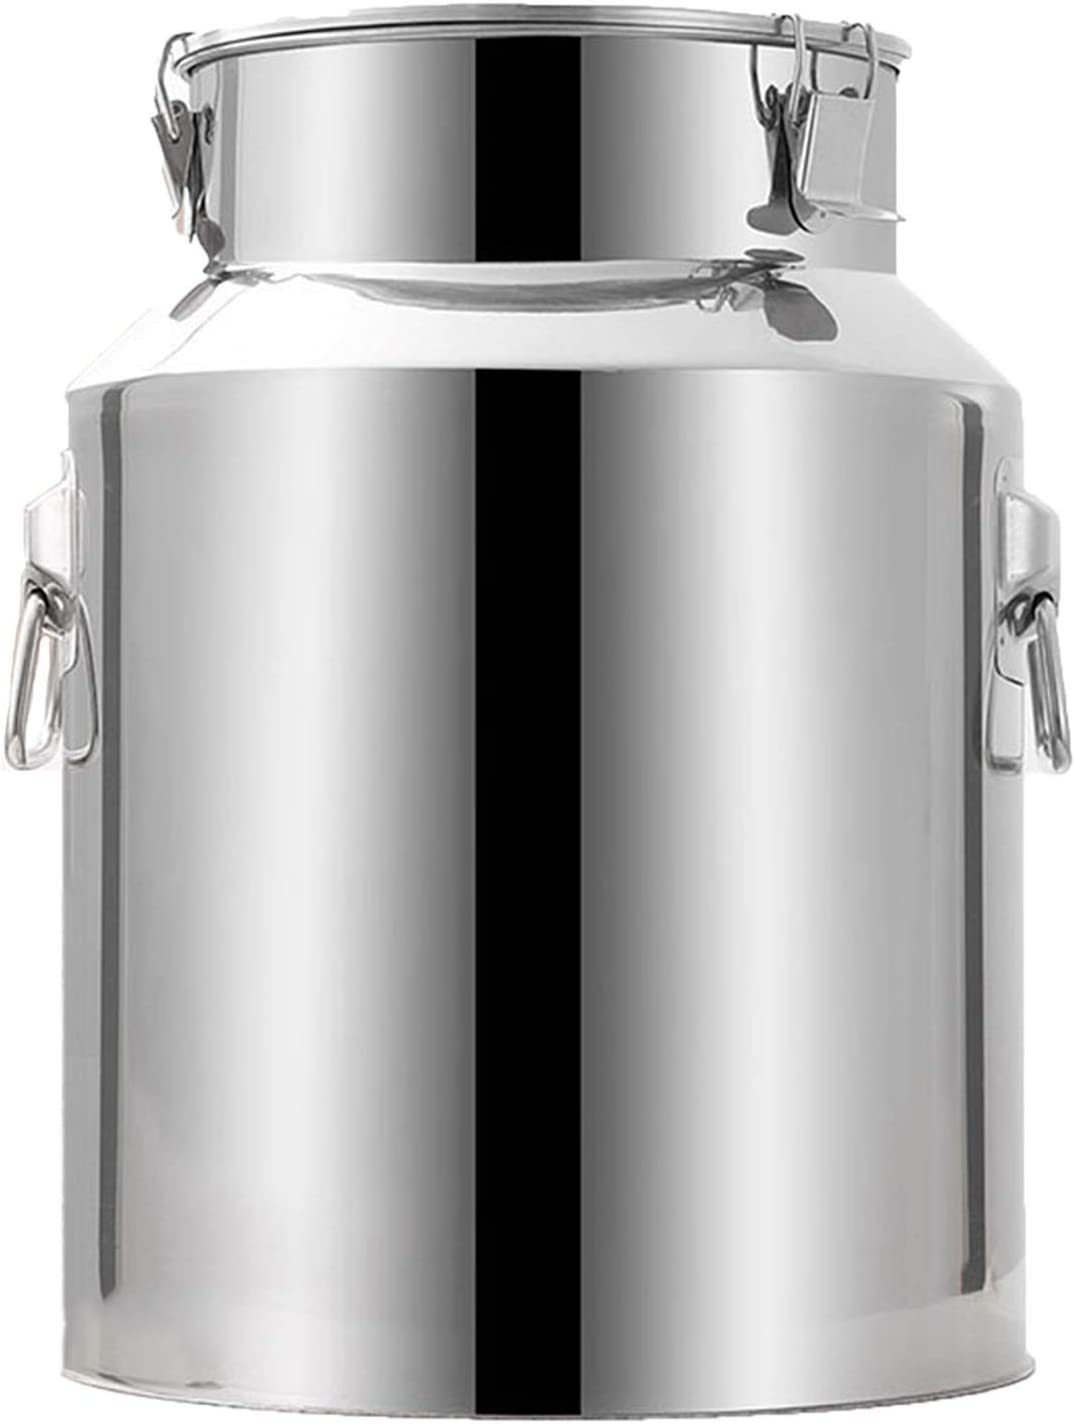 Airtight Canisters Stainless Steel Max 54% 5 ☆ very popular OFF Milk Wine Peanut Ferment Oil